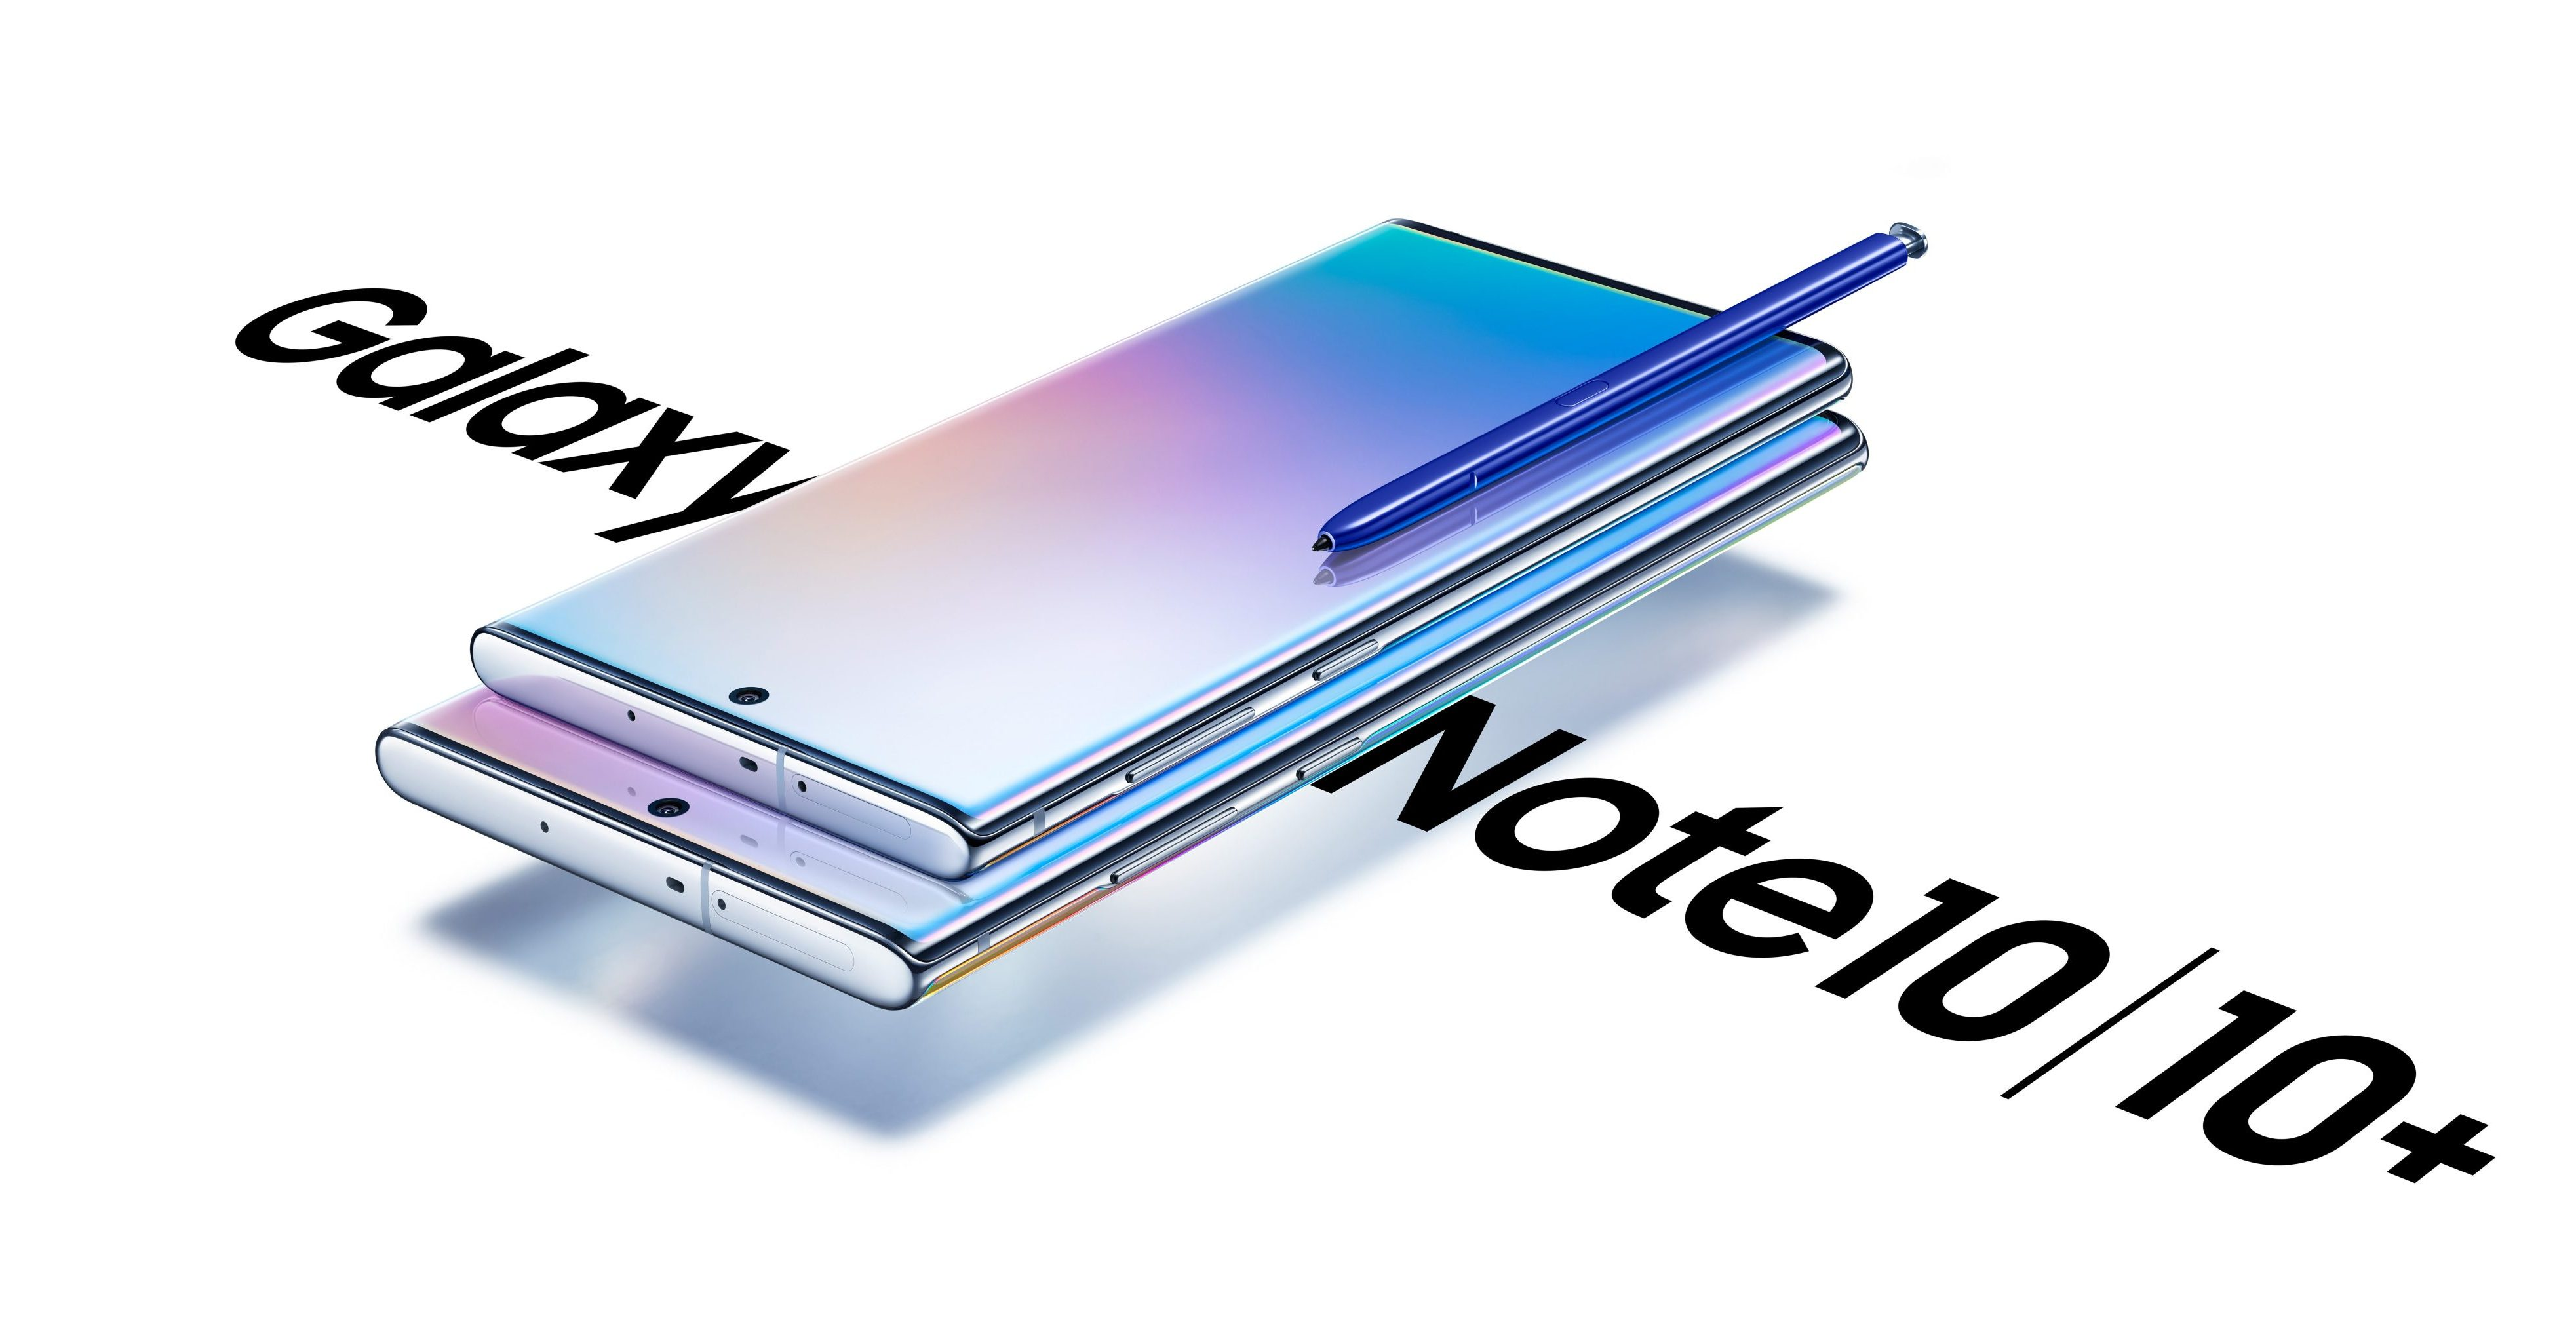 Introducing Galaxy Note10 Designed To Bring Passions To Life With Next Level Power Samsung Us Newsroom